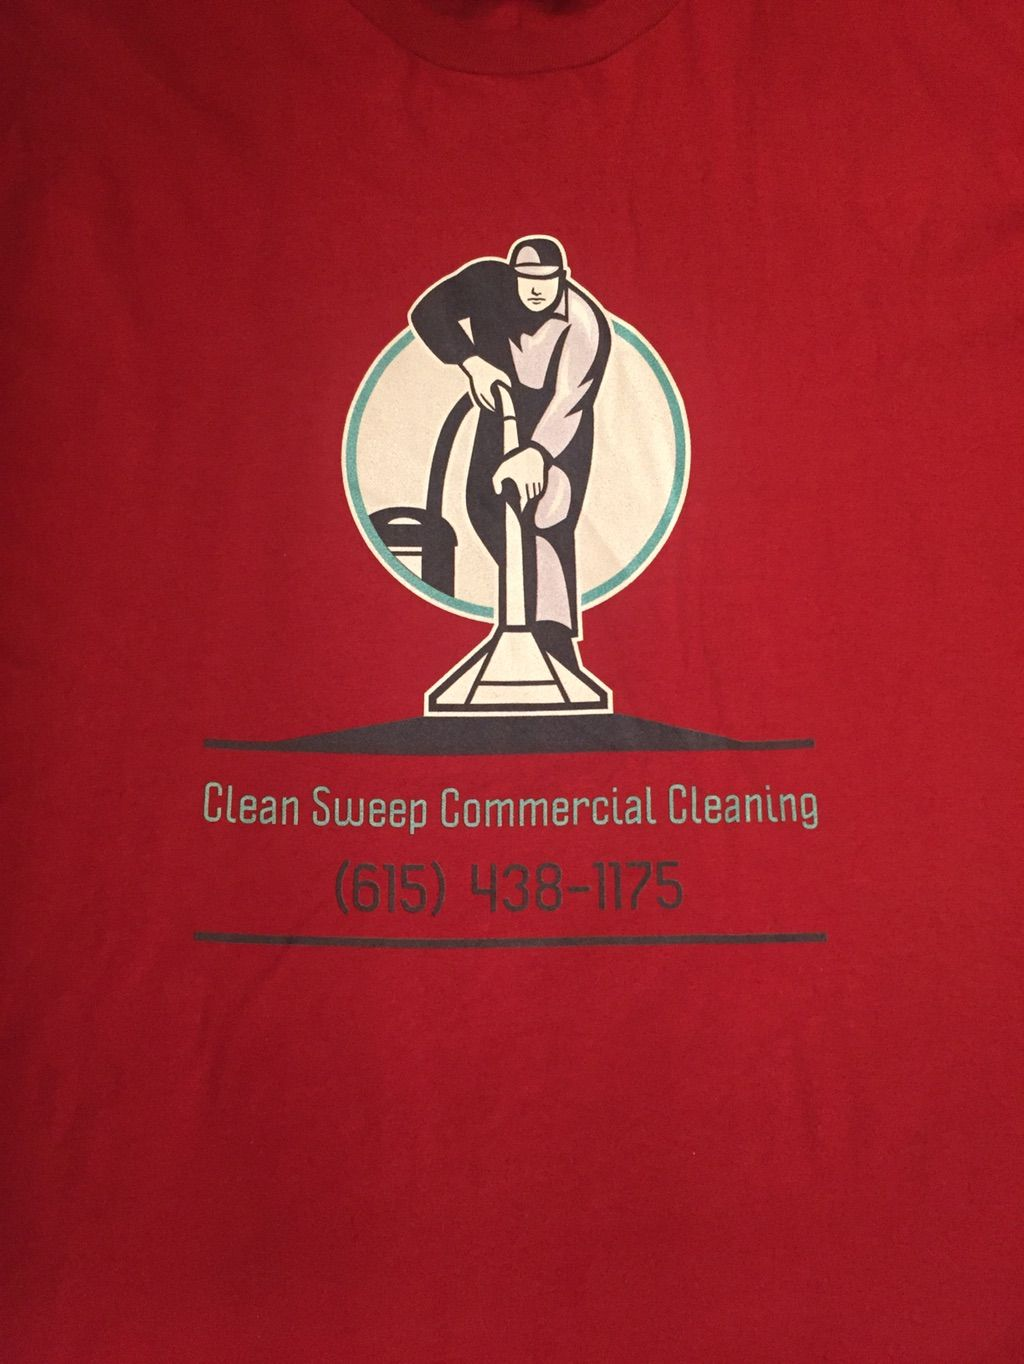 Clean Sweep Commercial Cleaning LLC